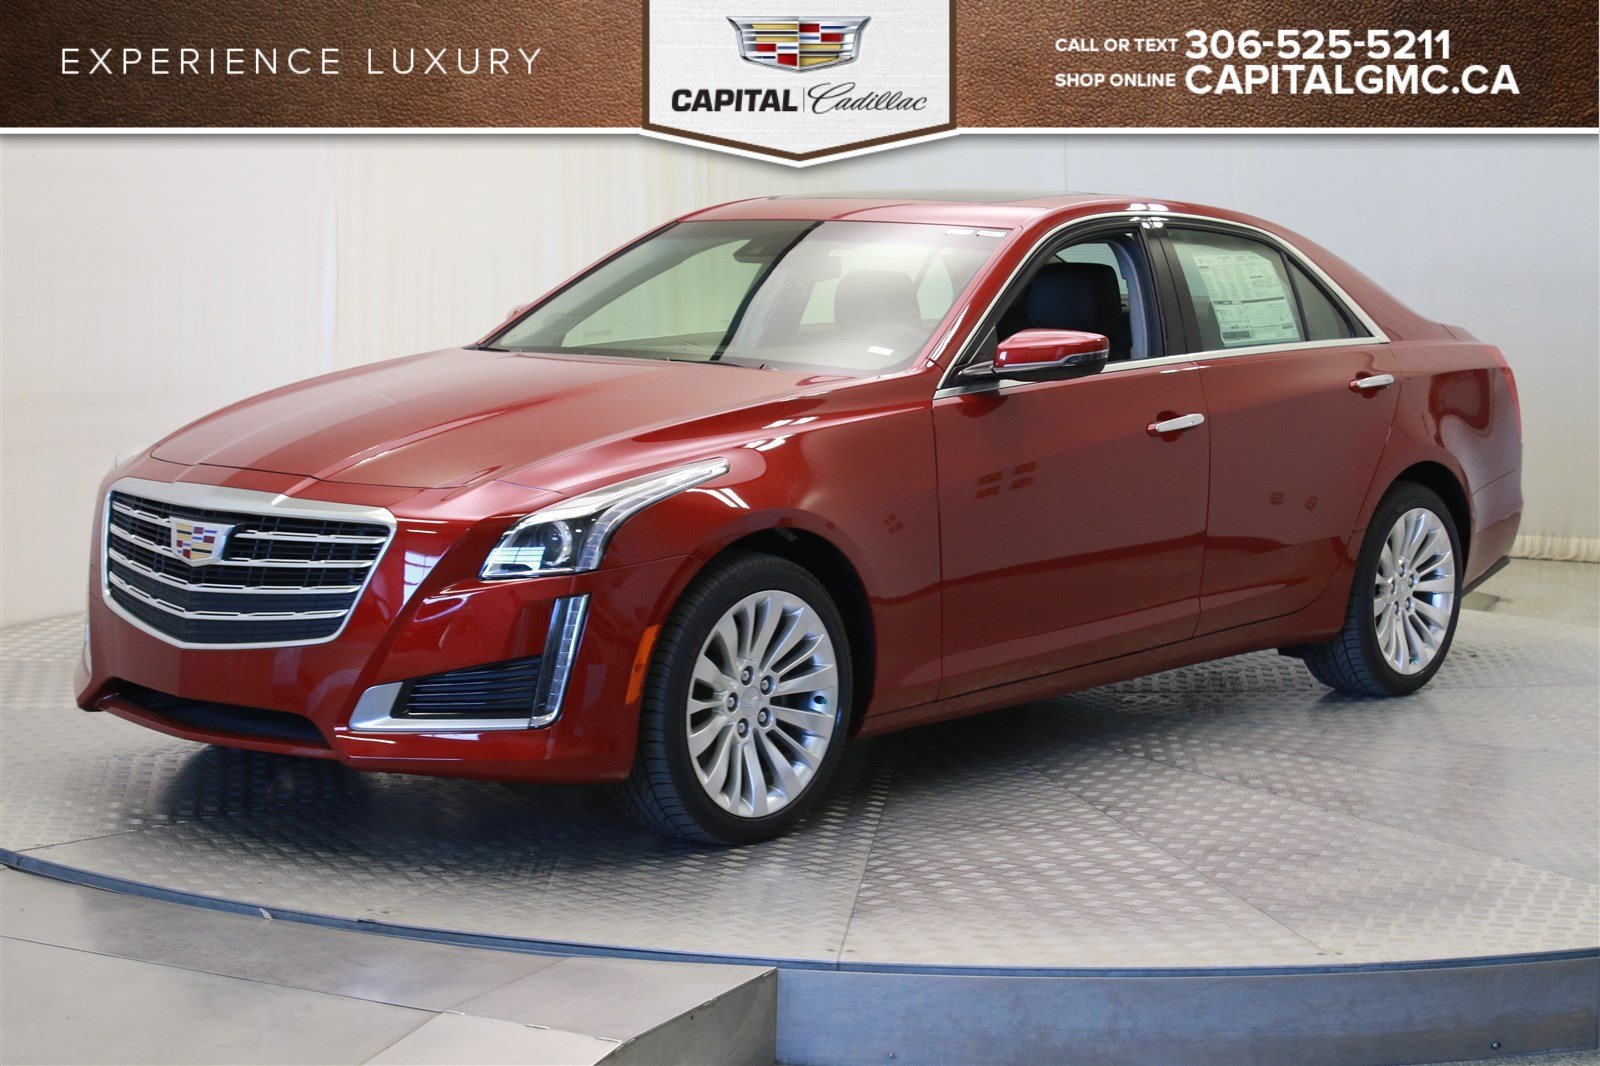 new 2018 cadillac cts sedan luxury collection awd 4 door sedan in regina 38183 capital auto group. Black Bedroom Furniture Sets. Home Design Ideas